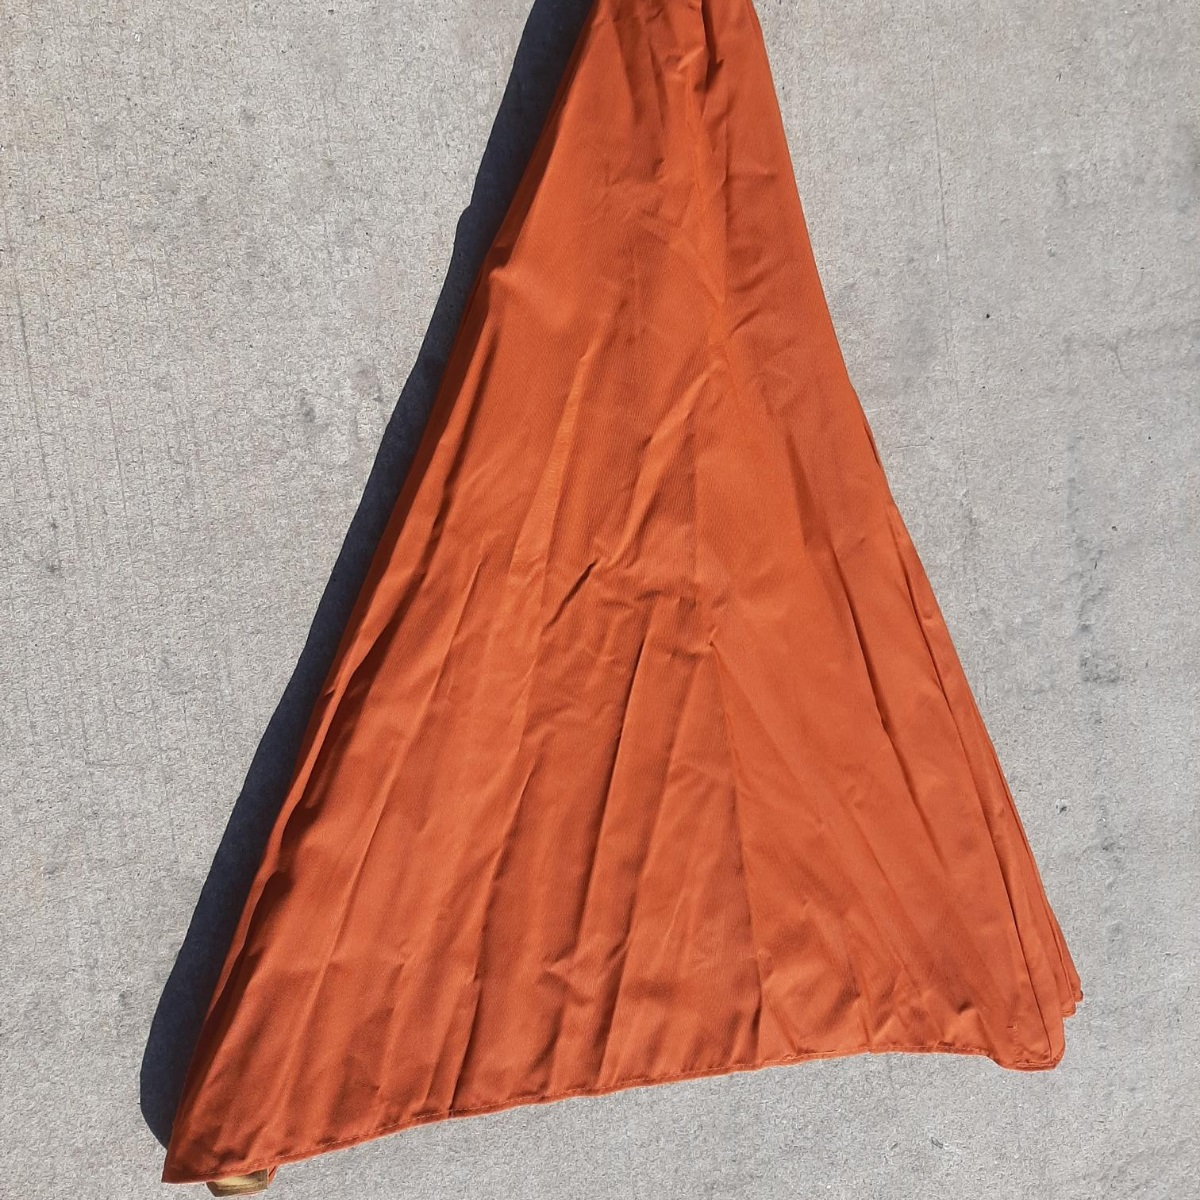 A terracotta canvas canopy for a parasol laid flat on a concrete floor